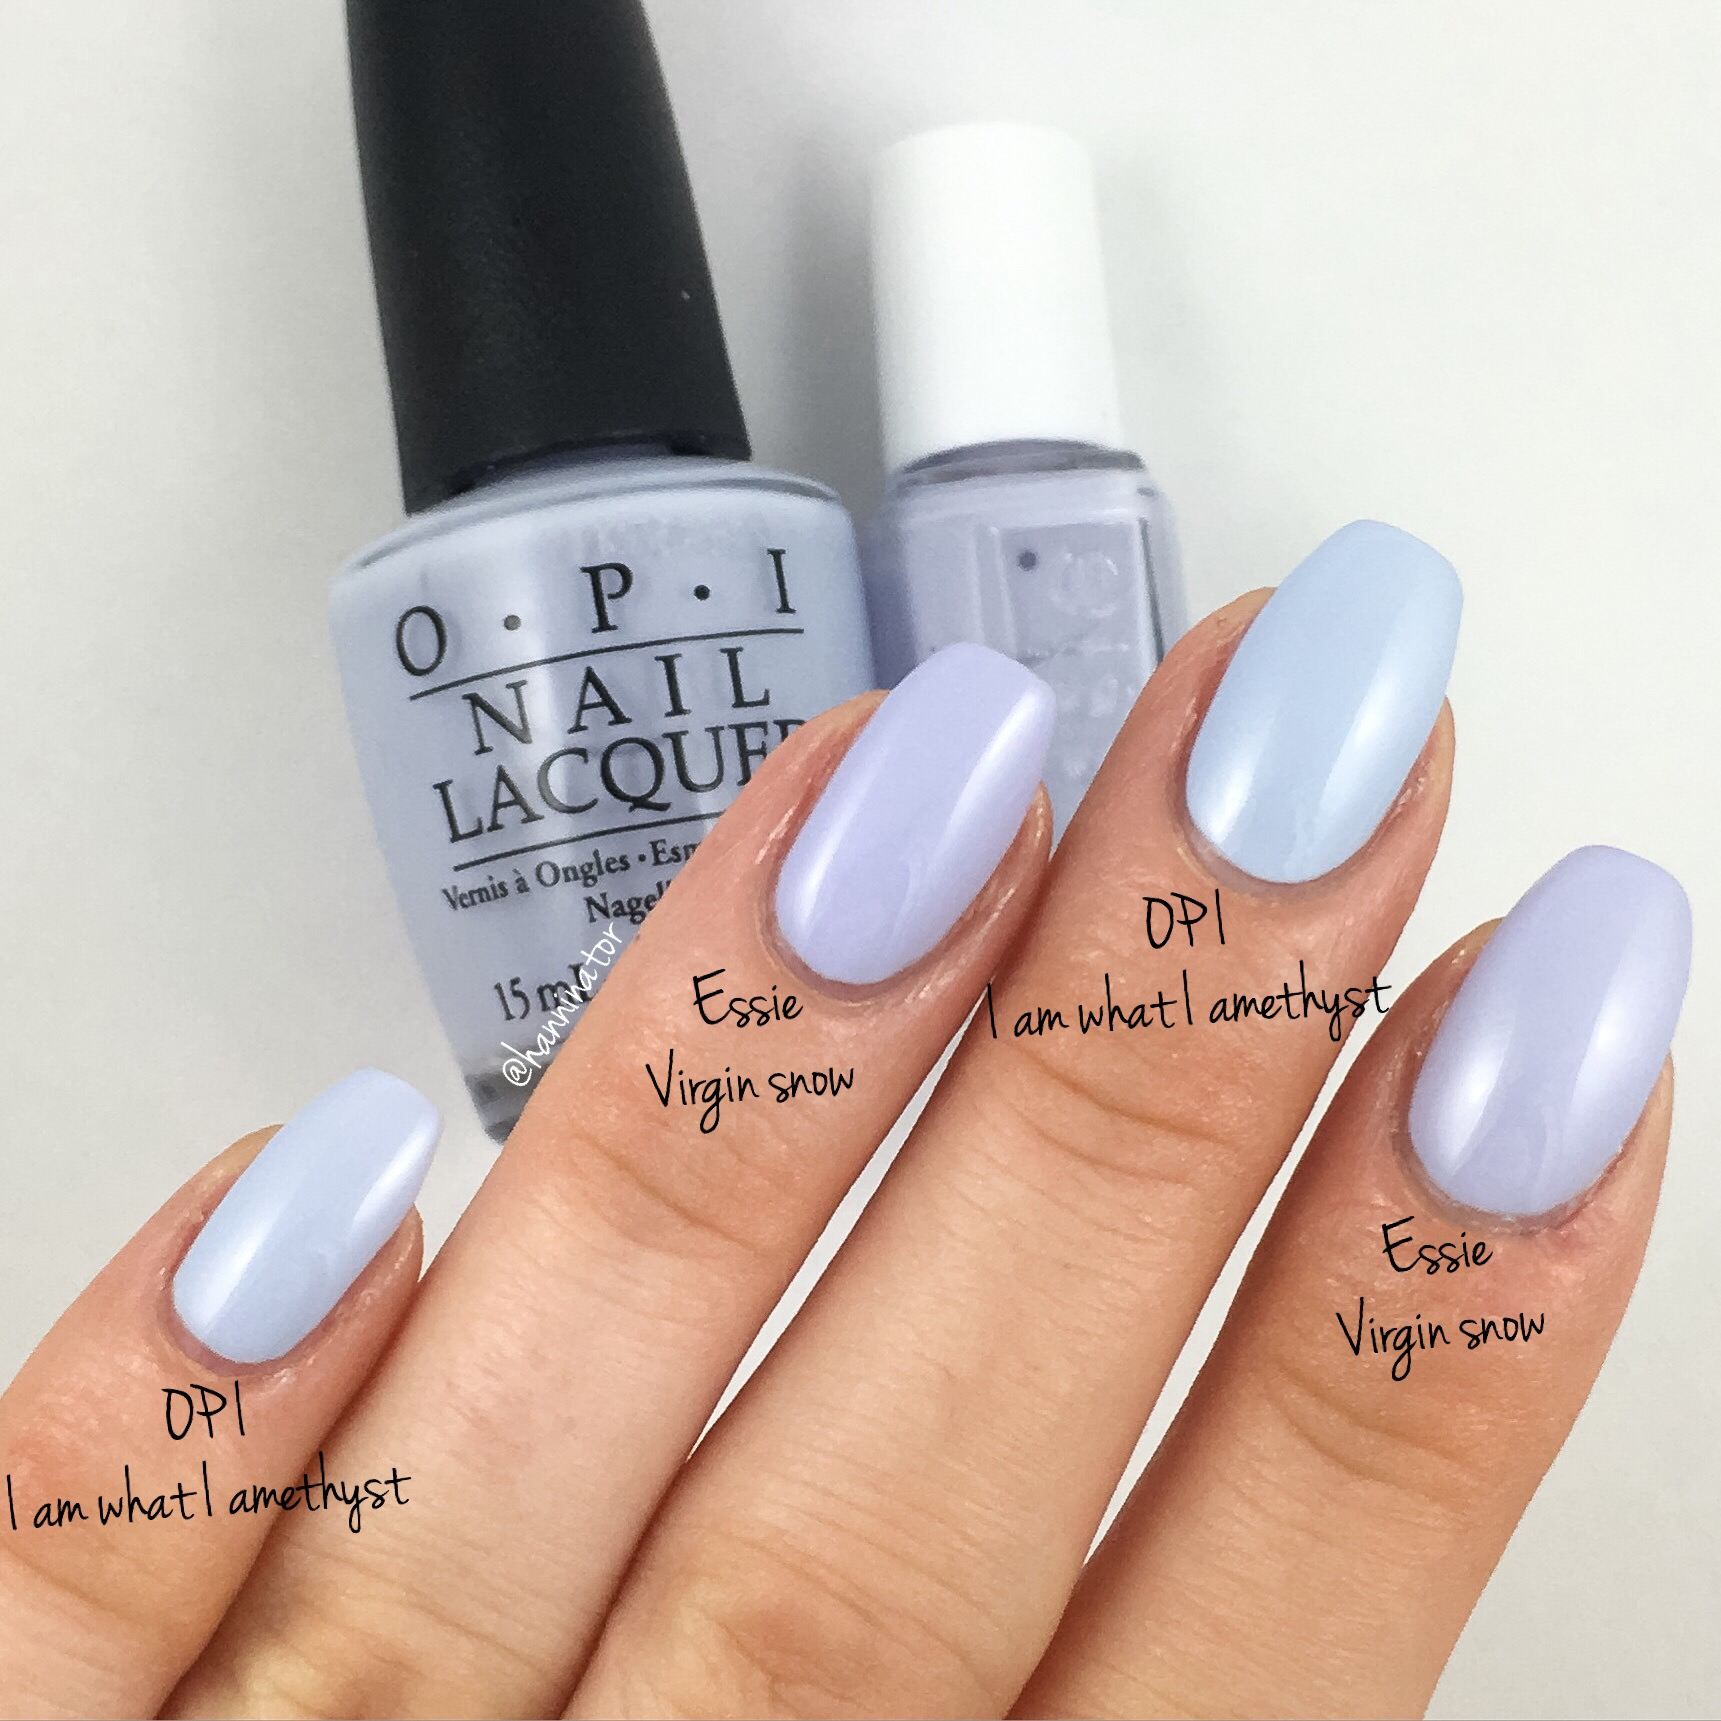 Opi I Am What I Amethyst Vs Essie Virgin Snow Hanninator